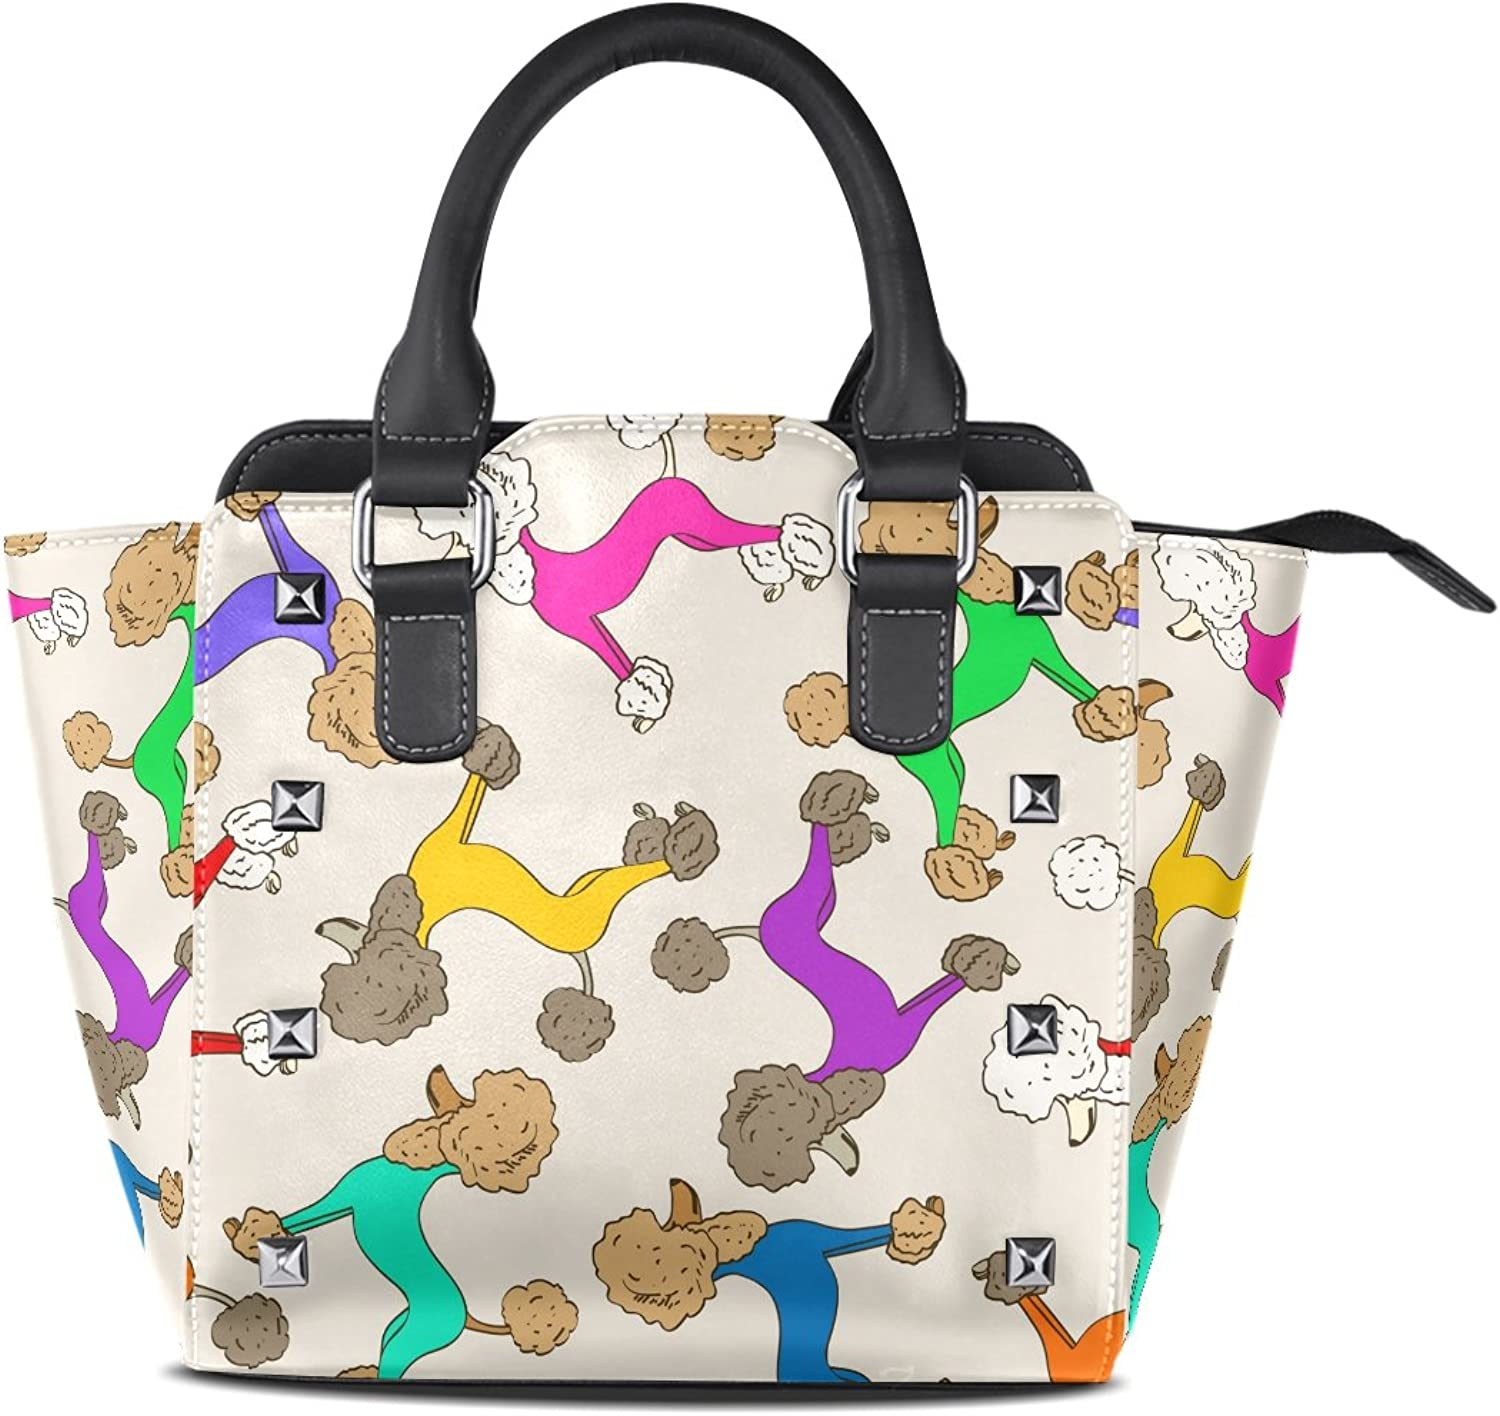 Sunlome colorful Poodle Dogs Puppy Print Handbags Women's PU Leather Top-Handle Shoulder Bags